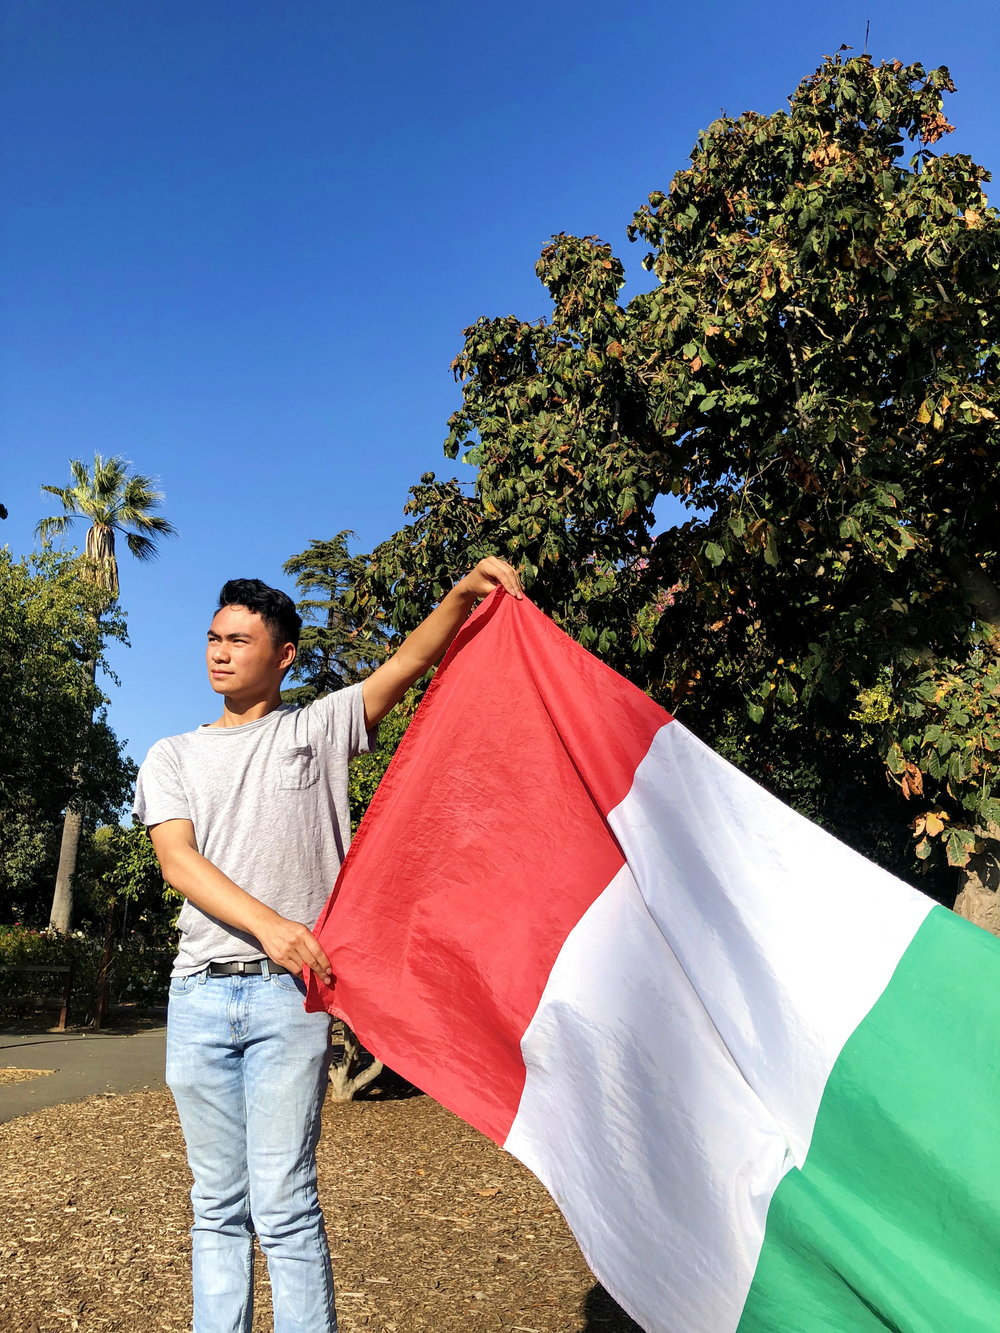 Alex Mak taught himself Italian in 6 months, and then directly enrolled in AP Italian.